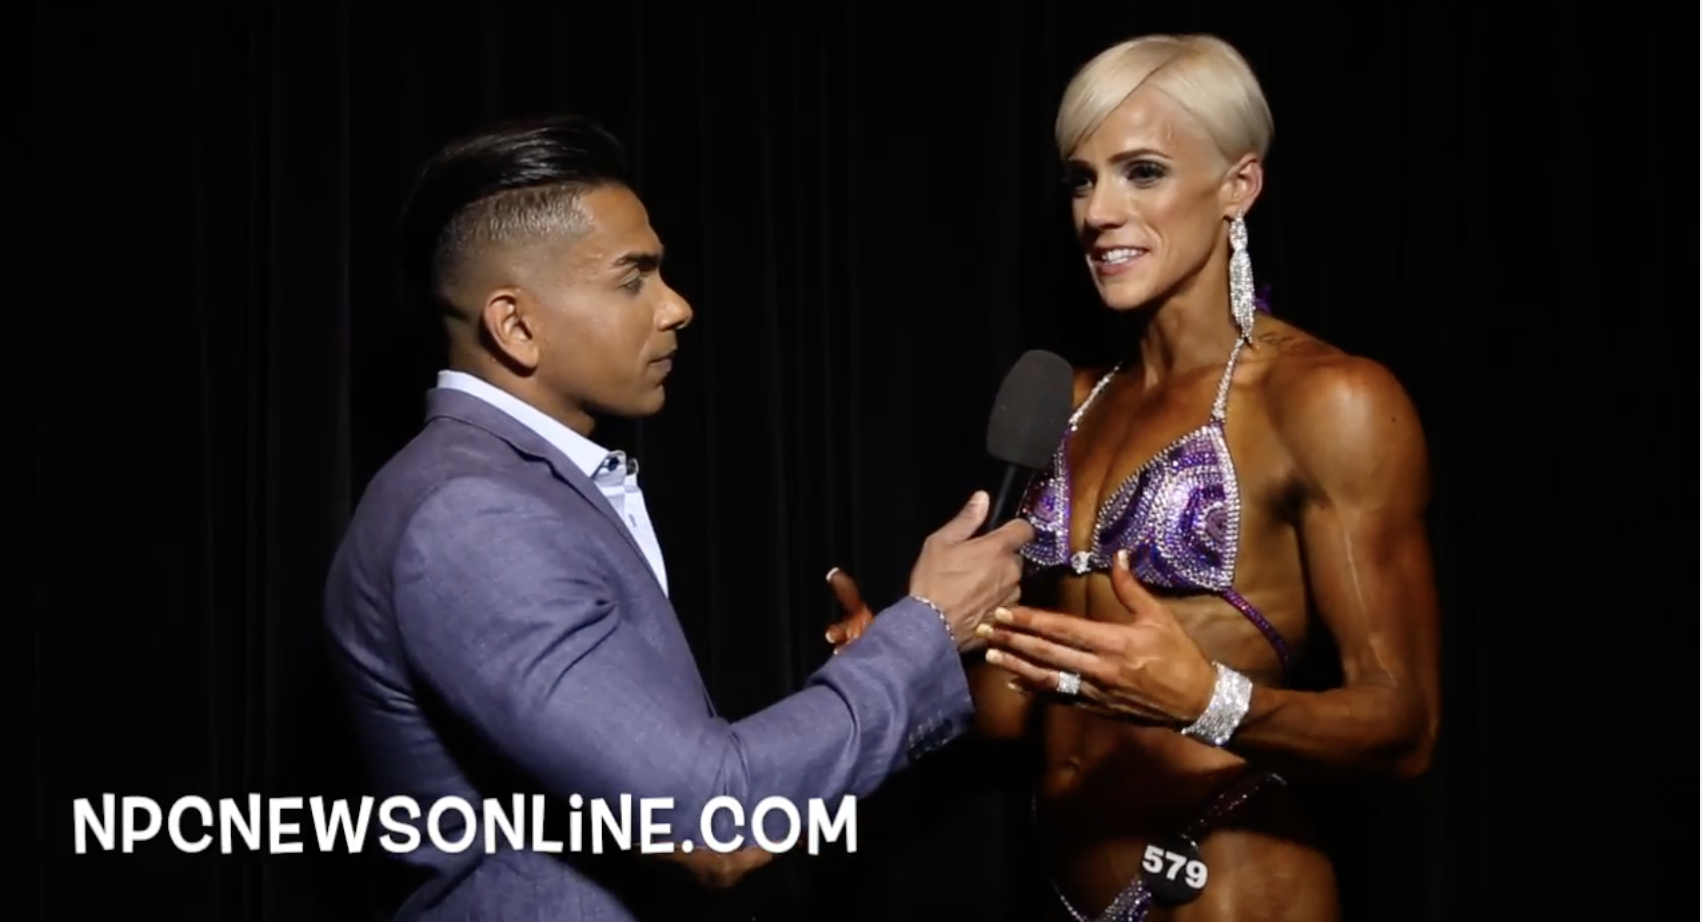 2017 NPC USA  Men's Physique Overall Nicole Wolf Interviewed By Freddy Mac.